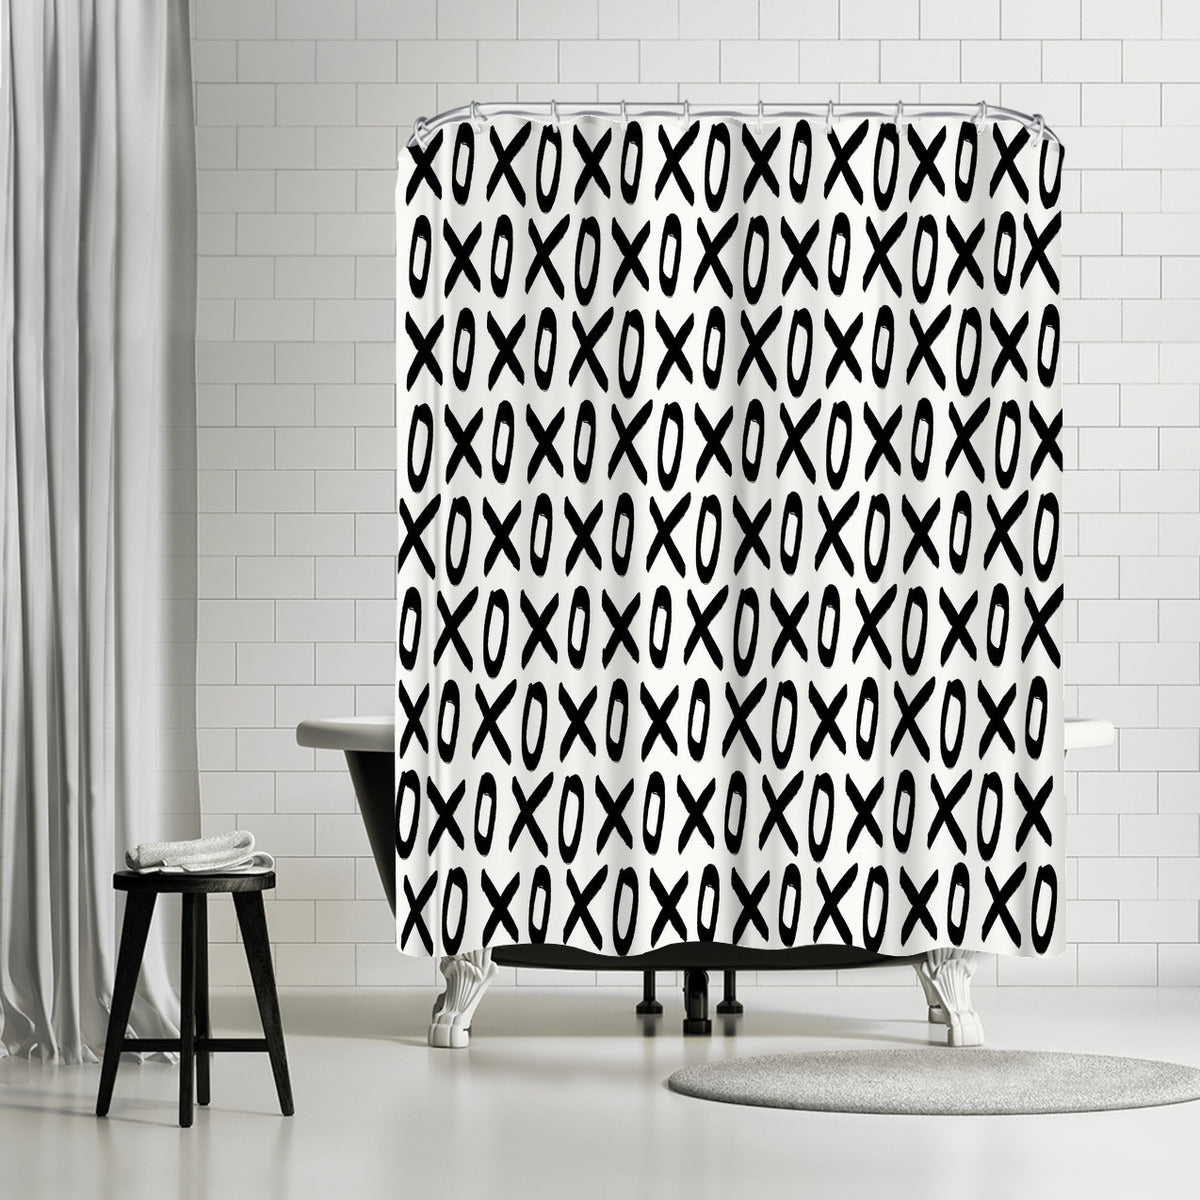 Xoxo by Leah Flores Shower Curtain -  - Americanflat